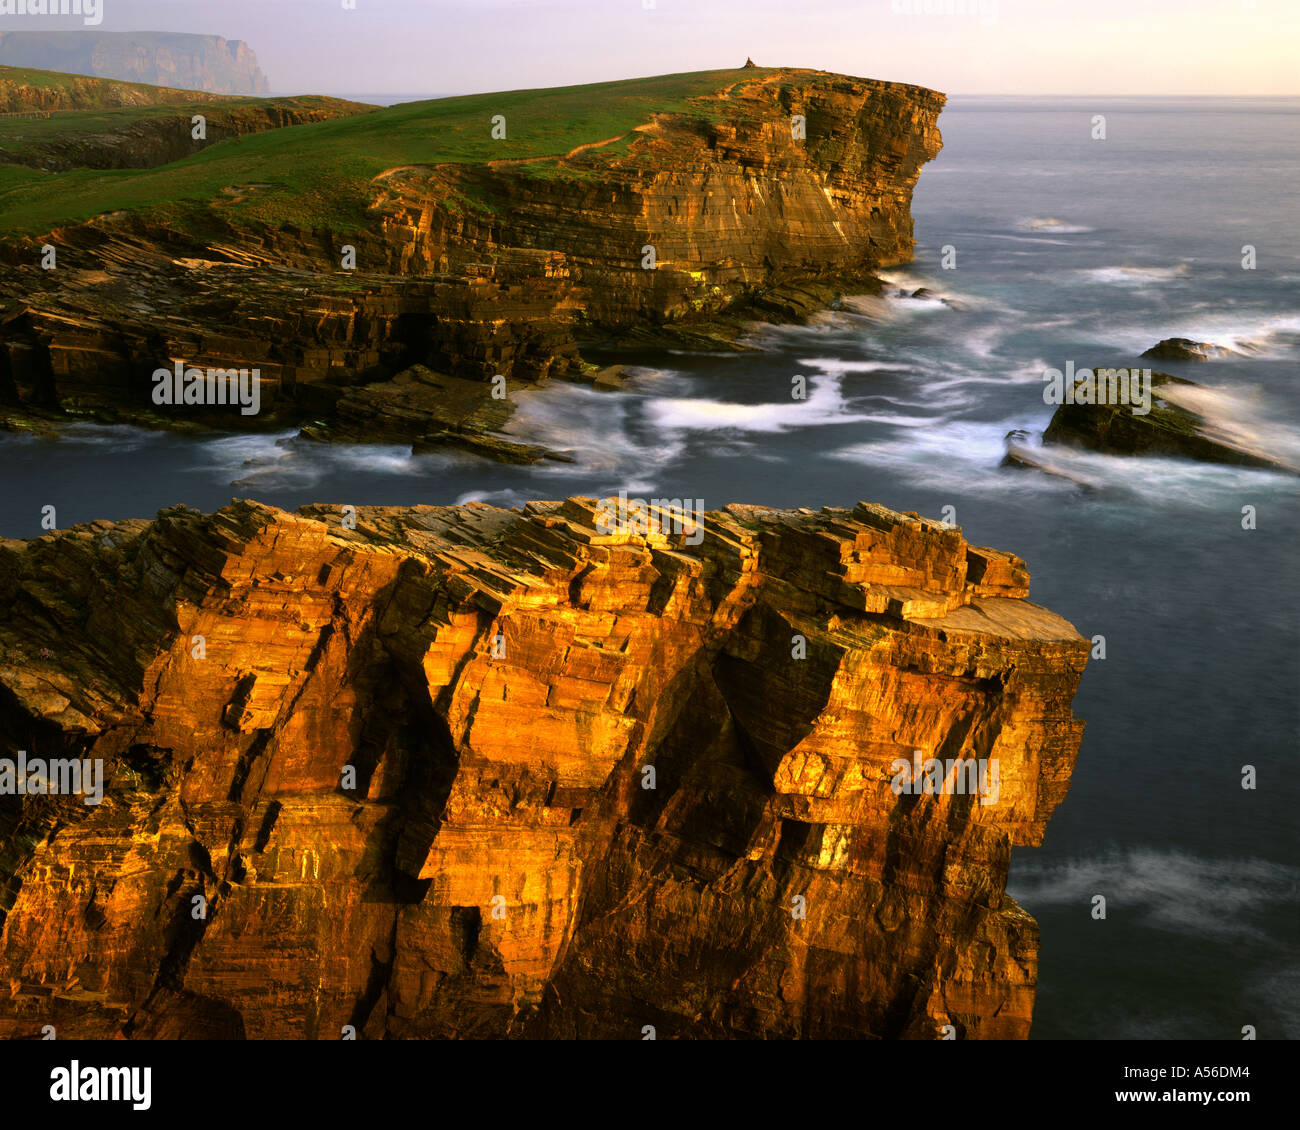 GB - Ecosse: Côte au Yesnaby sur Orkney continentale Photo Stock